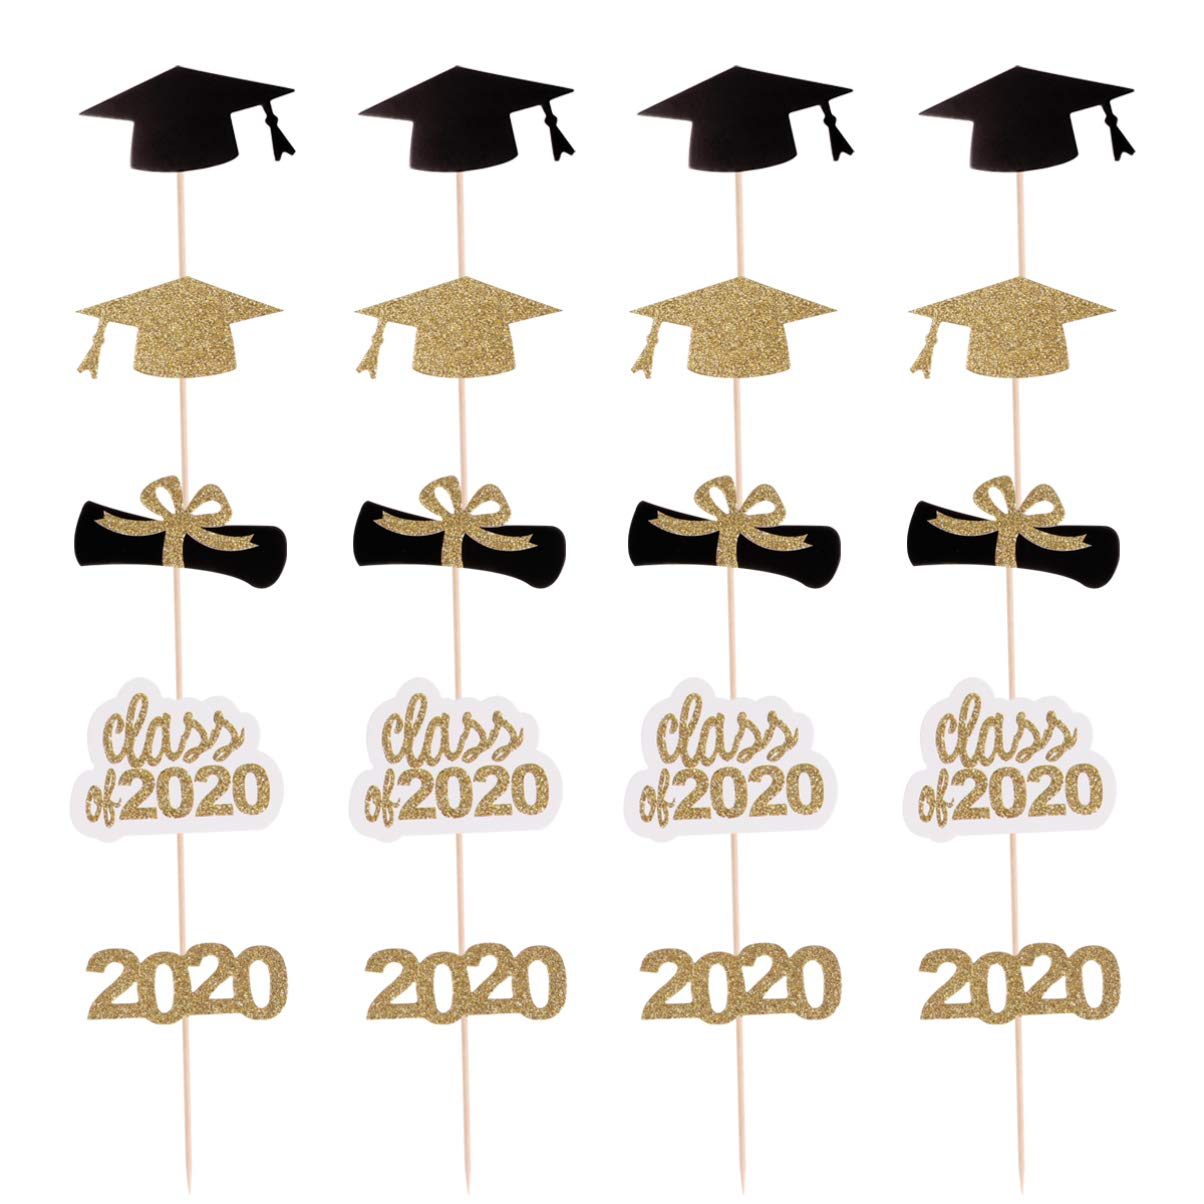 Amosfun 30pcs 2020 Graduation Cake Toppers Glitter Graduation Cap Cupcake Toppers Cake Picks 2020 Congrats Party Decorations for Graduation Birthday Party Supplies